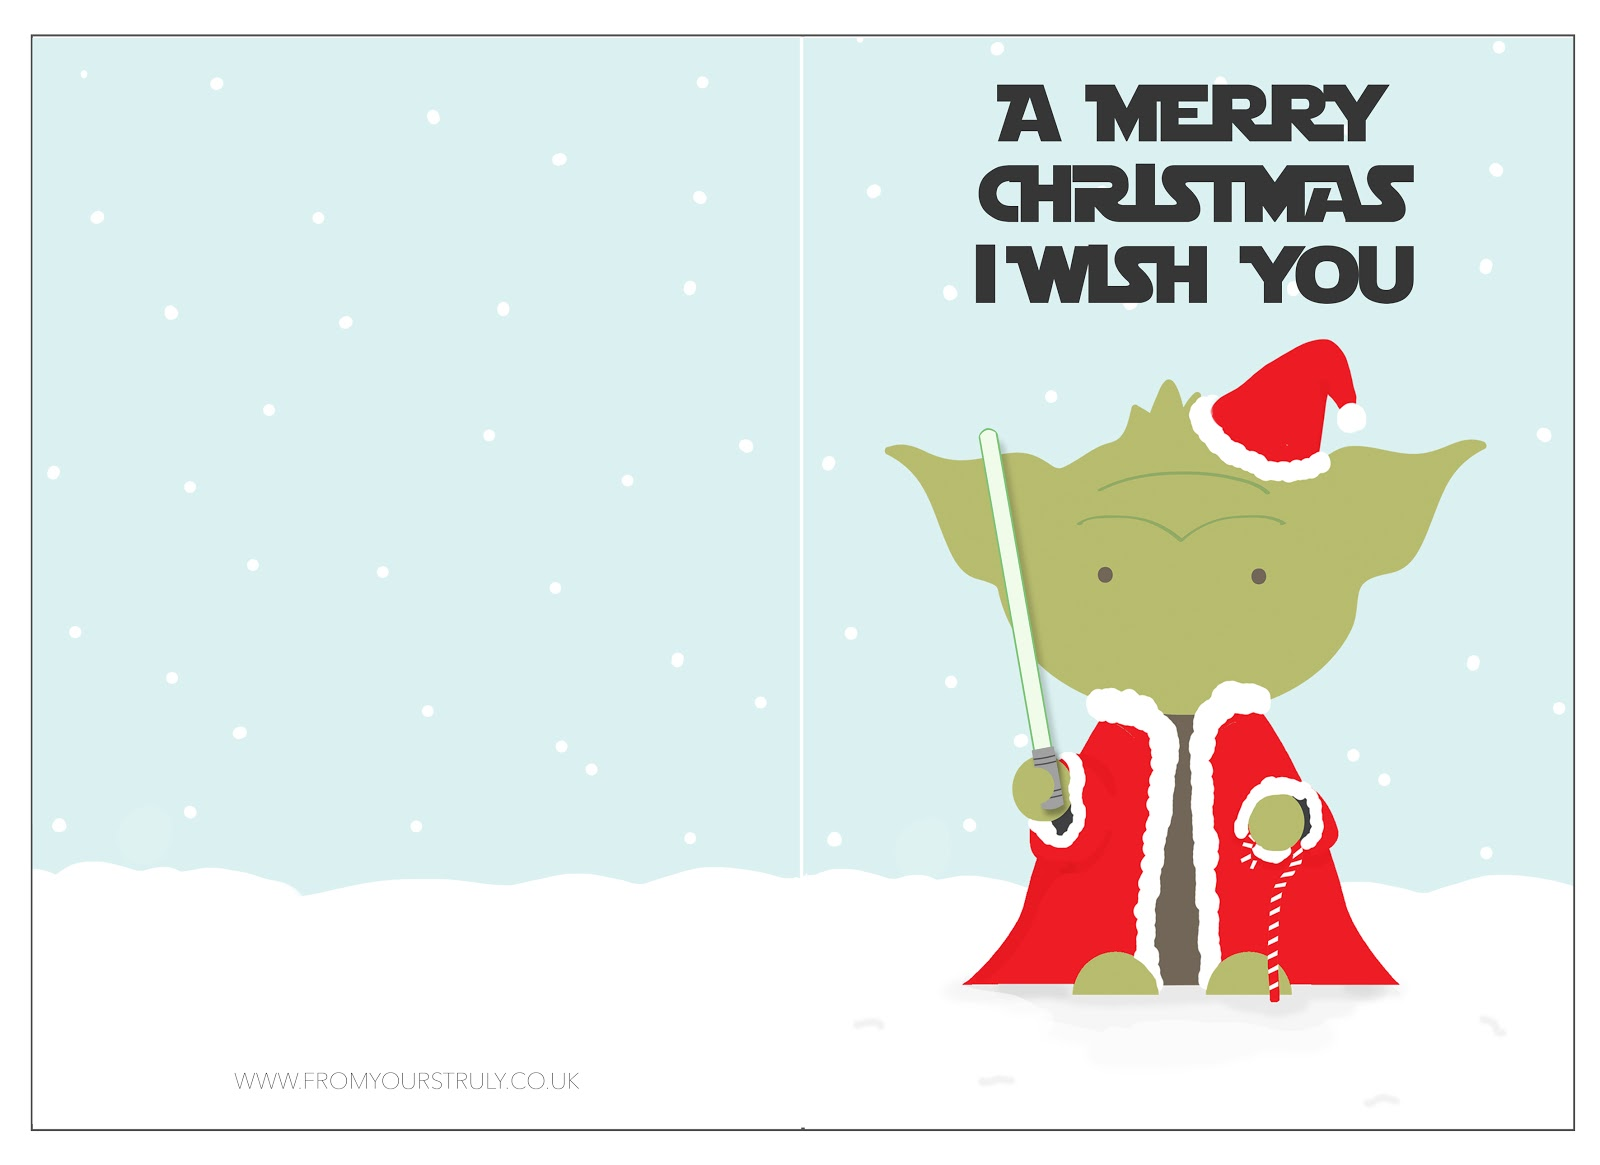 star wars i have a special christmas card for you i have designed just download print the image below on a4 card cut and fold and ta dah - Star Wars Christmas Card